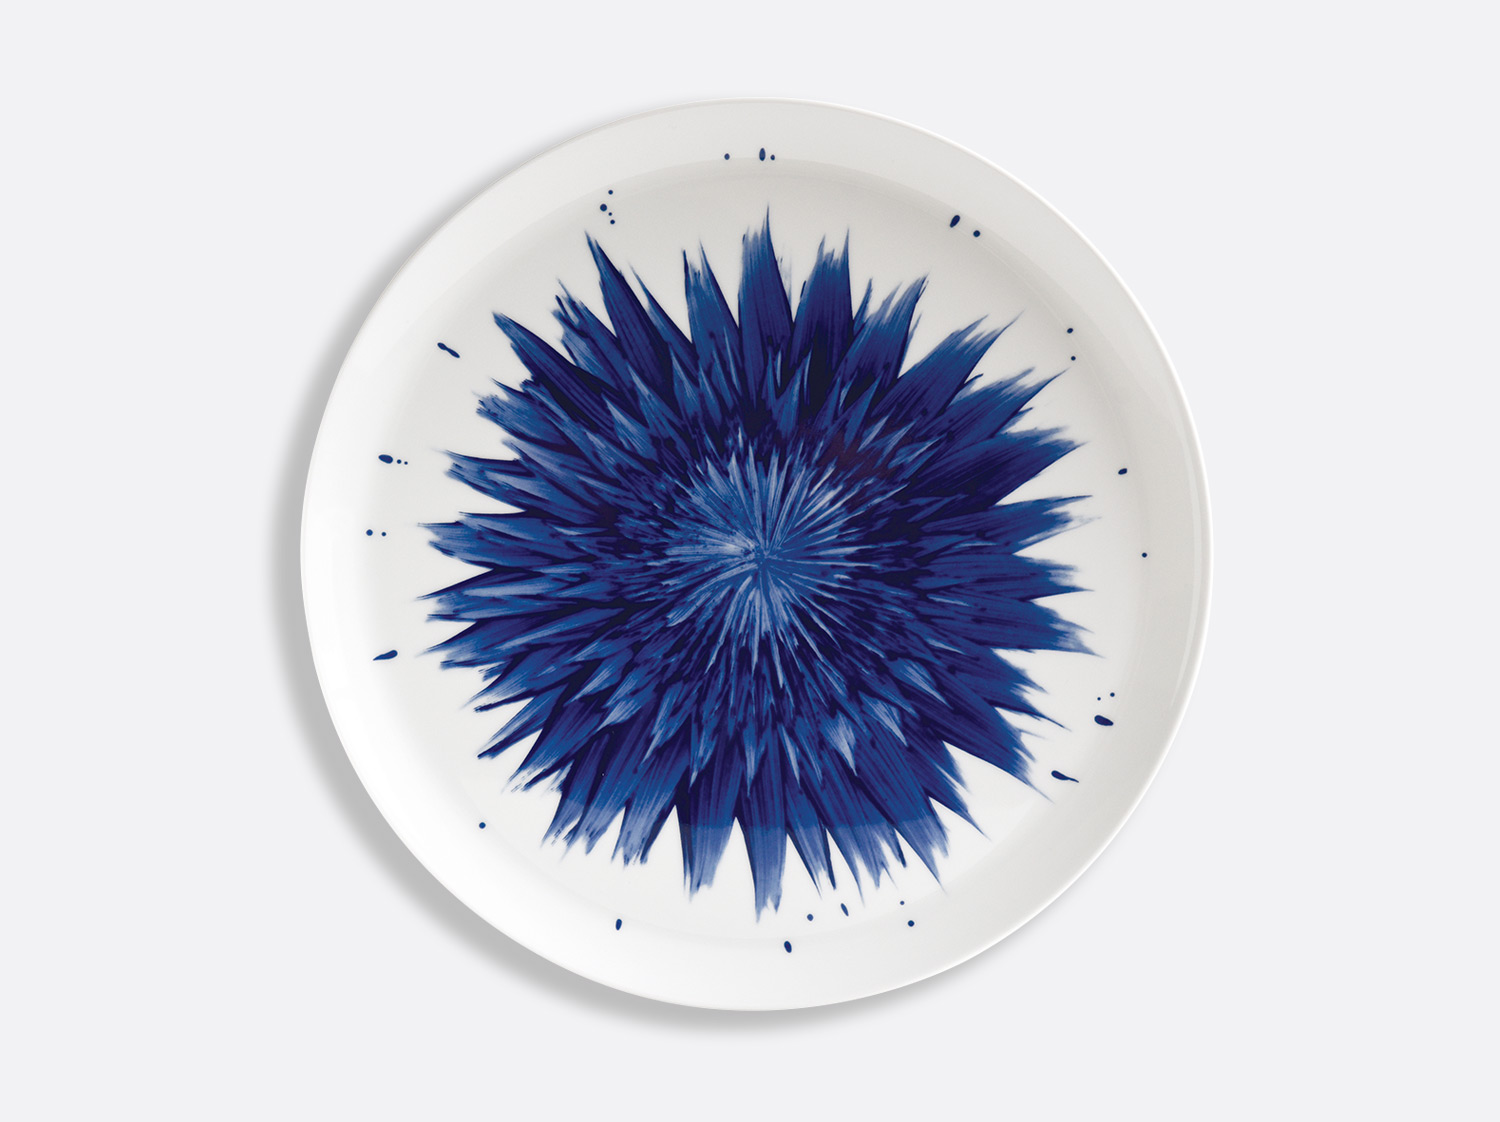 Plat à tarte 32 cm en porcelaine de la collection IN BLOOM - Zemer Peled Bernardaud